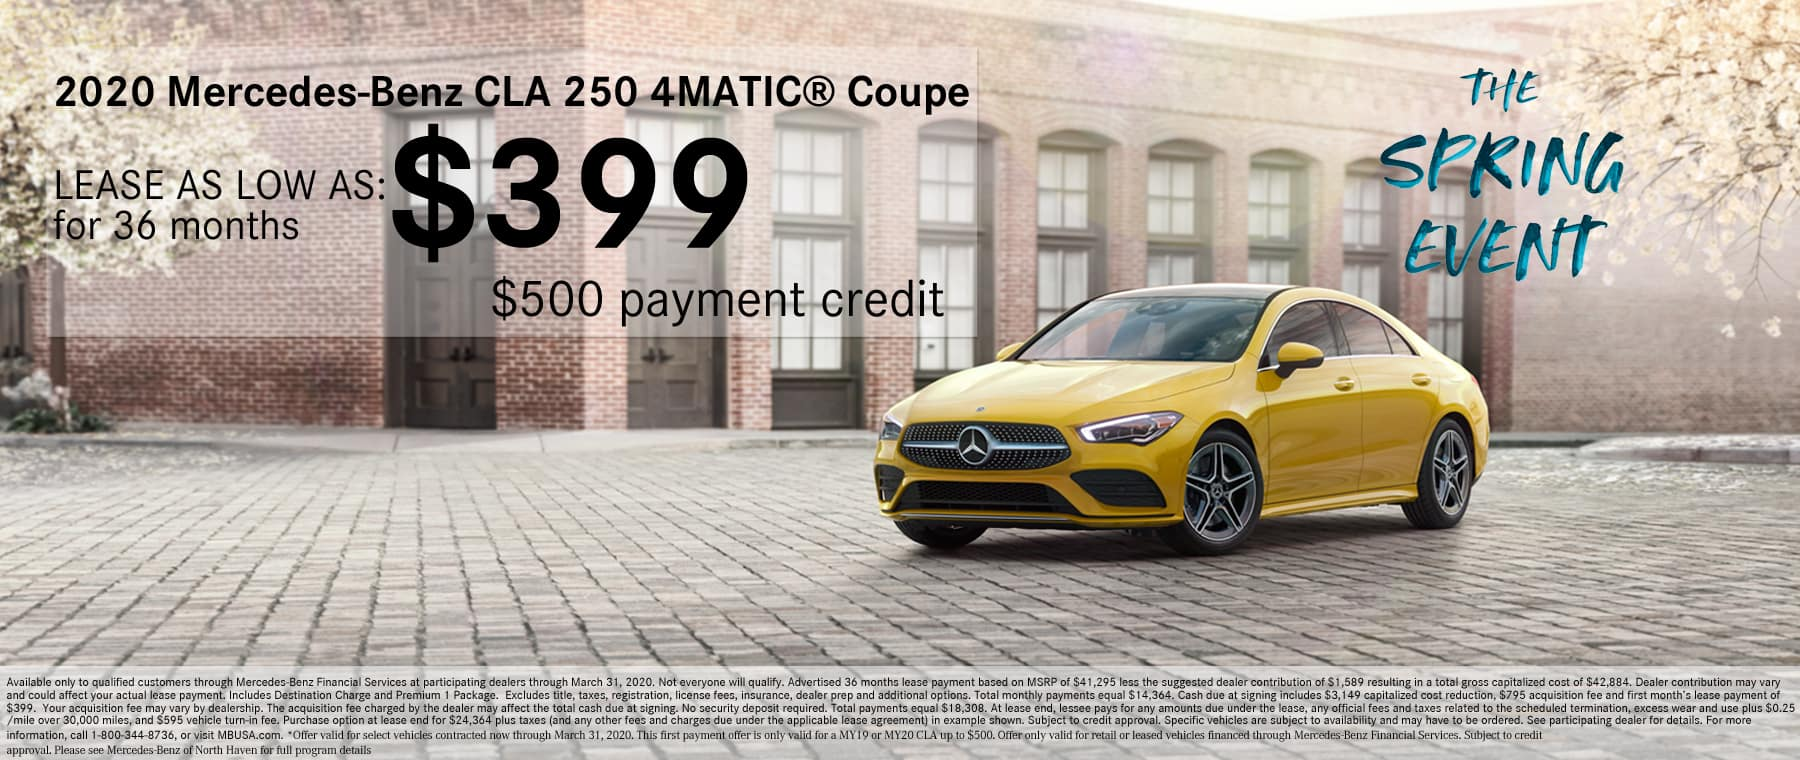 Mercedes-Benz of North Haven CLA Lease Special